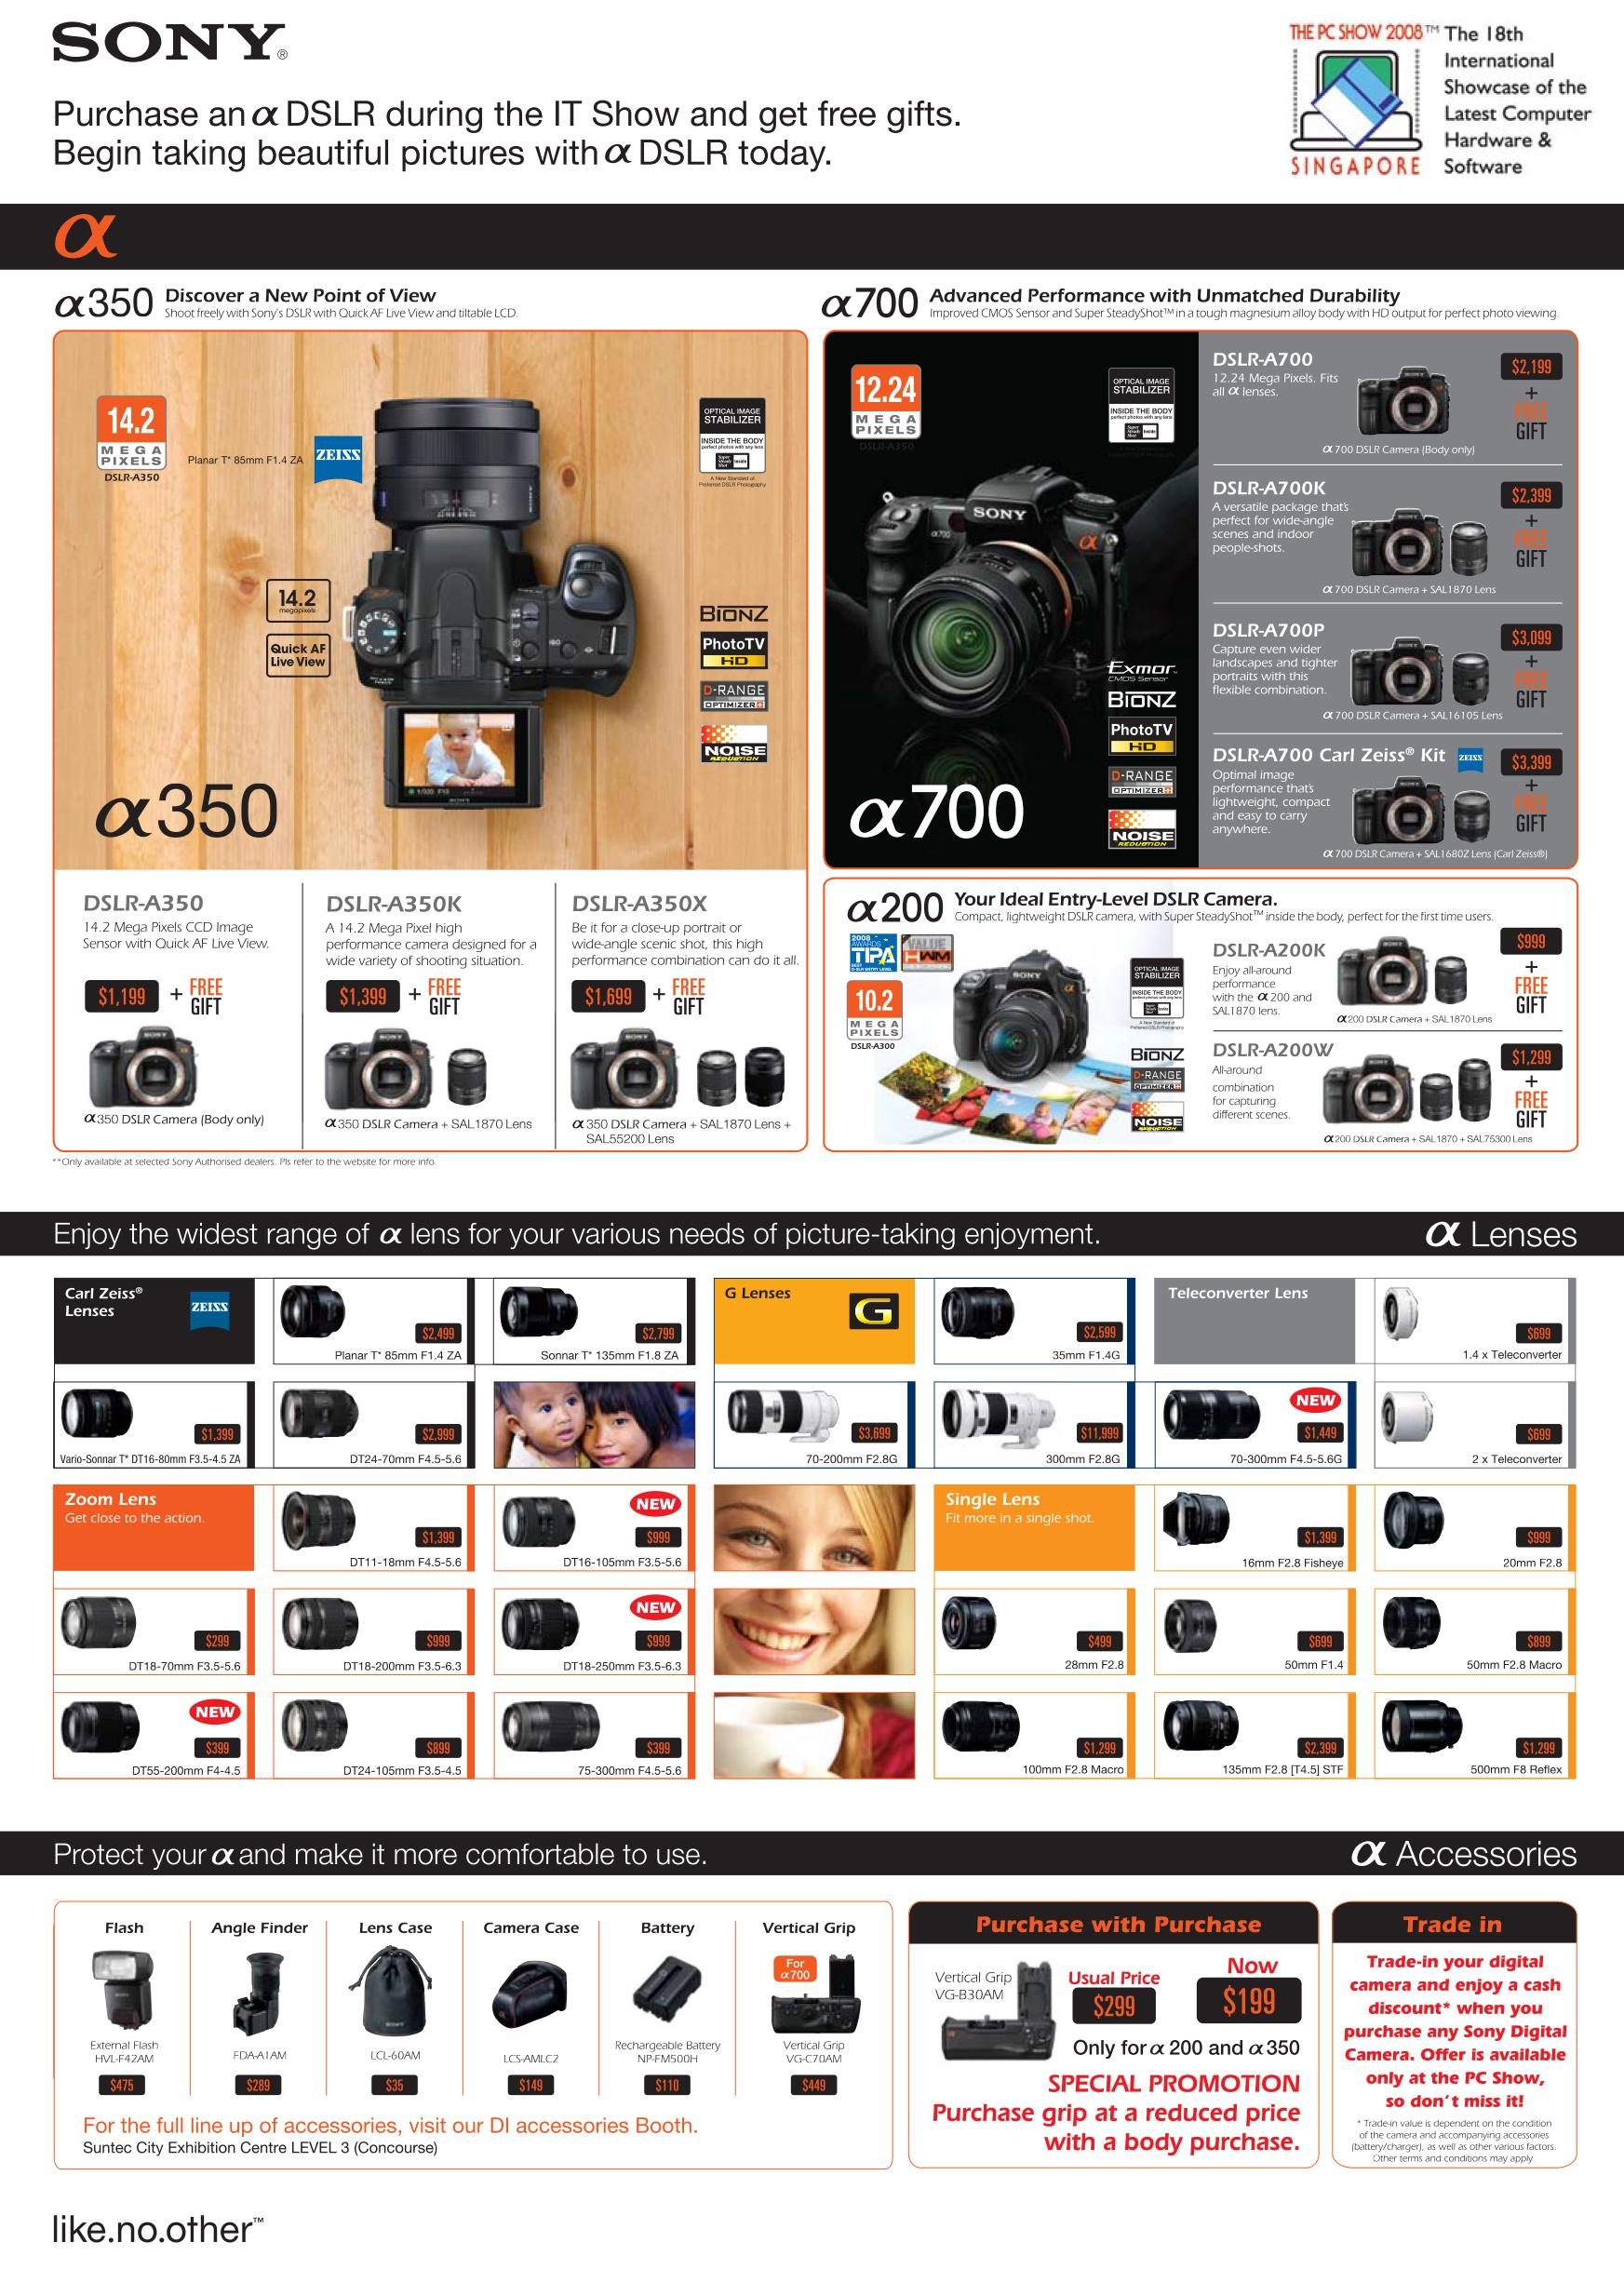 PC Show 2008 price list image brochure of Alpha.pdf 01